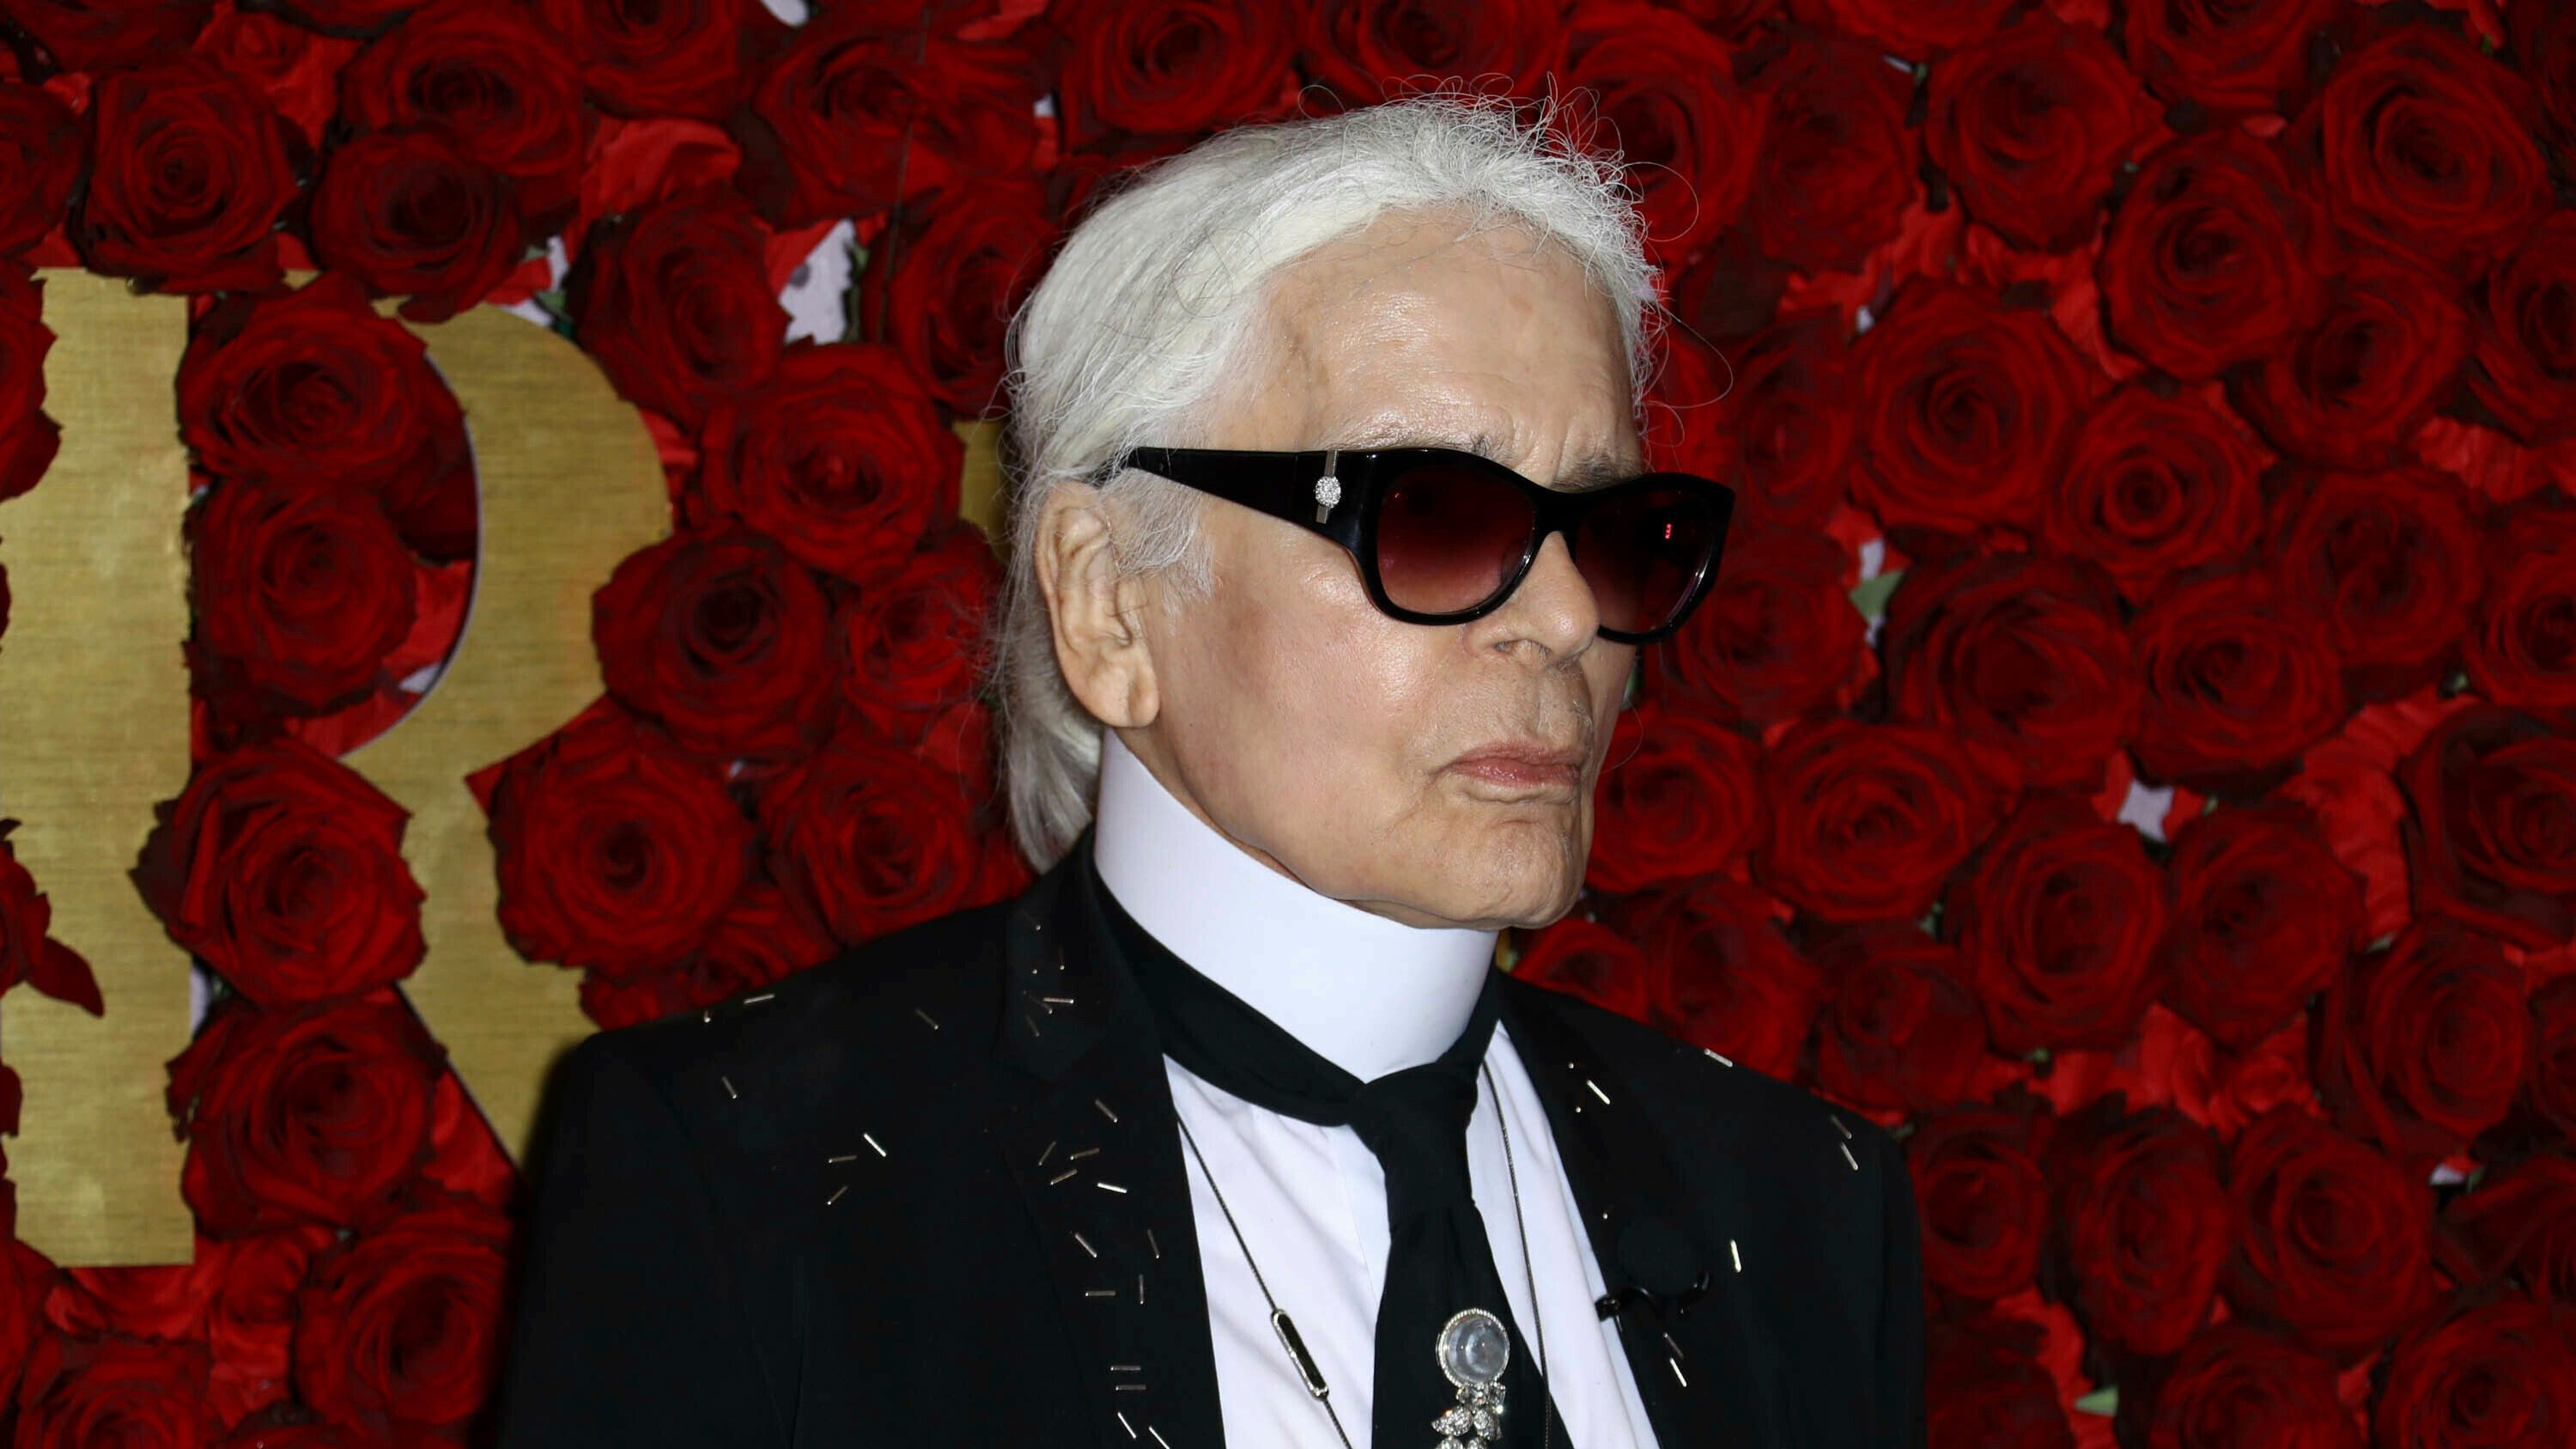 Photo by: John Nacion/STAR MAX/IPx 2019 10/24/17 Karl Lagerfeld at The Second Annual WWD Honors in New York City.